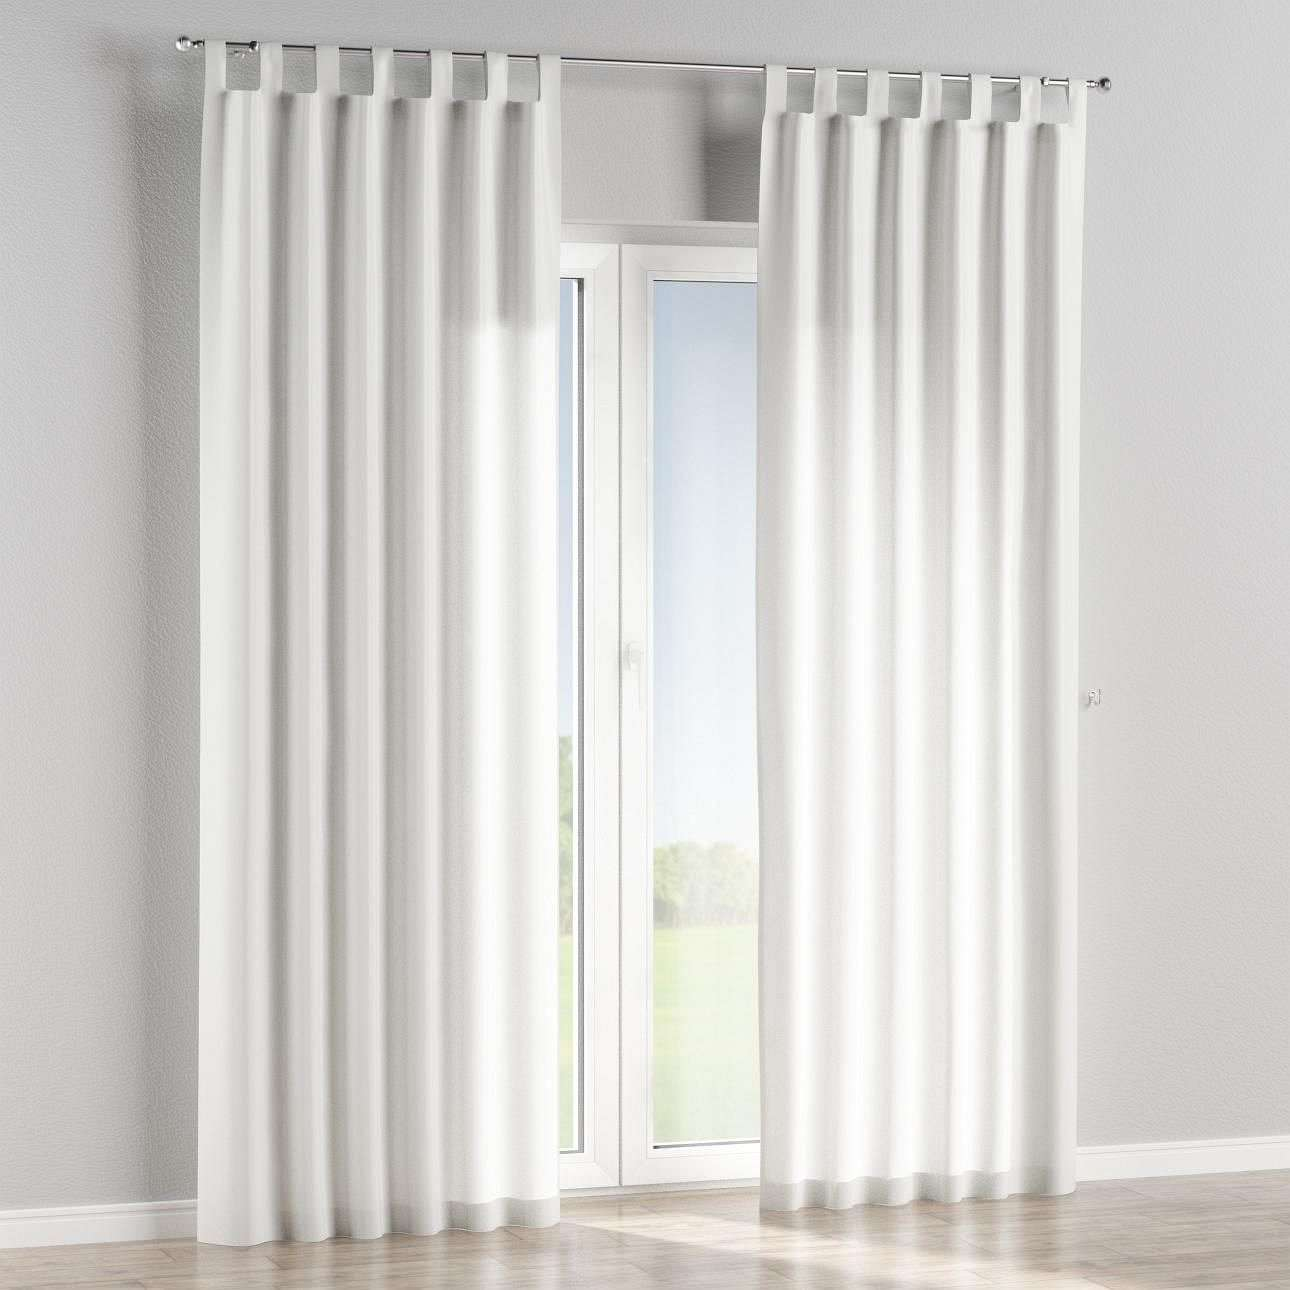 Tab top lined curtains in collection Marina, fabric: 140-12